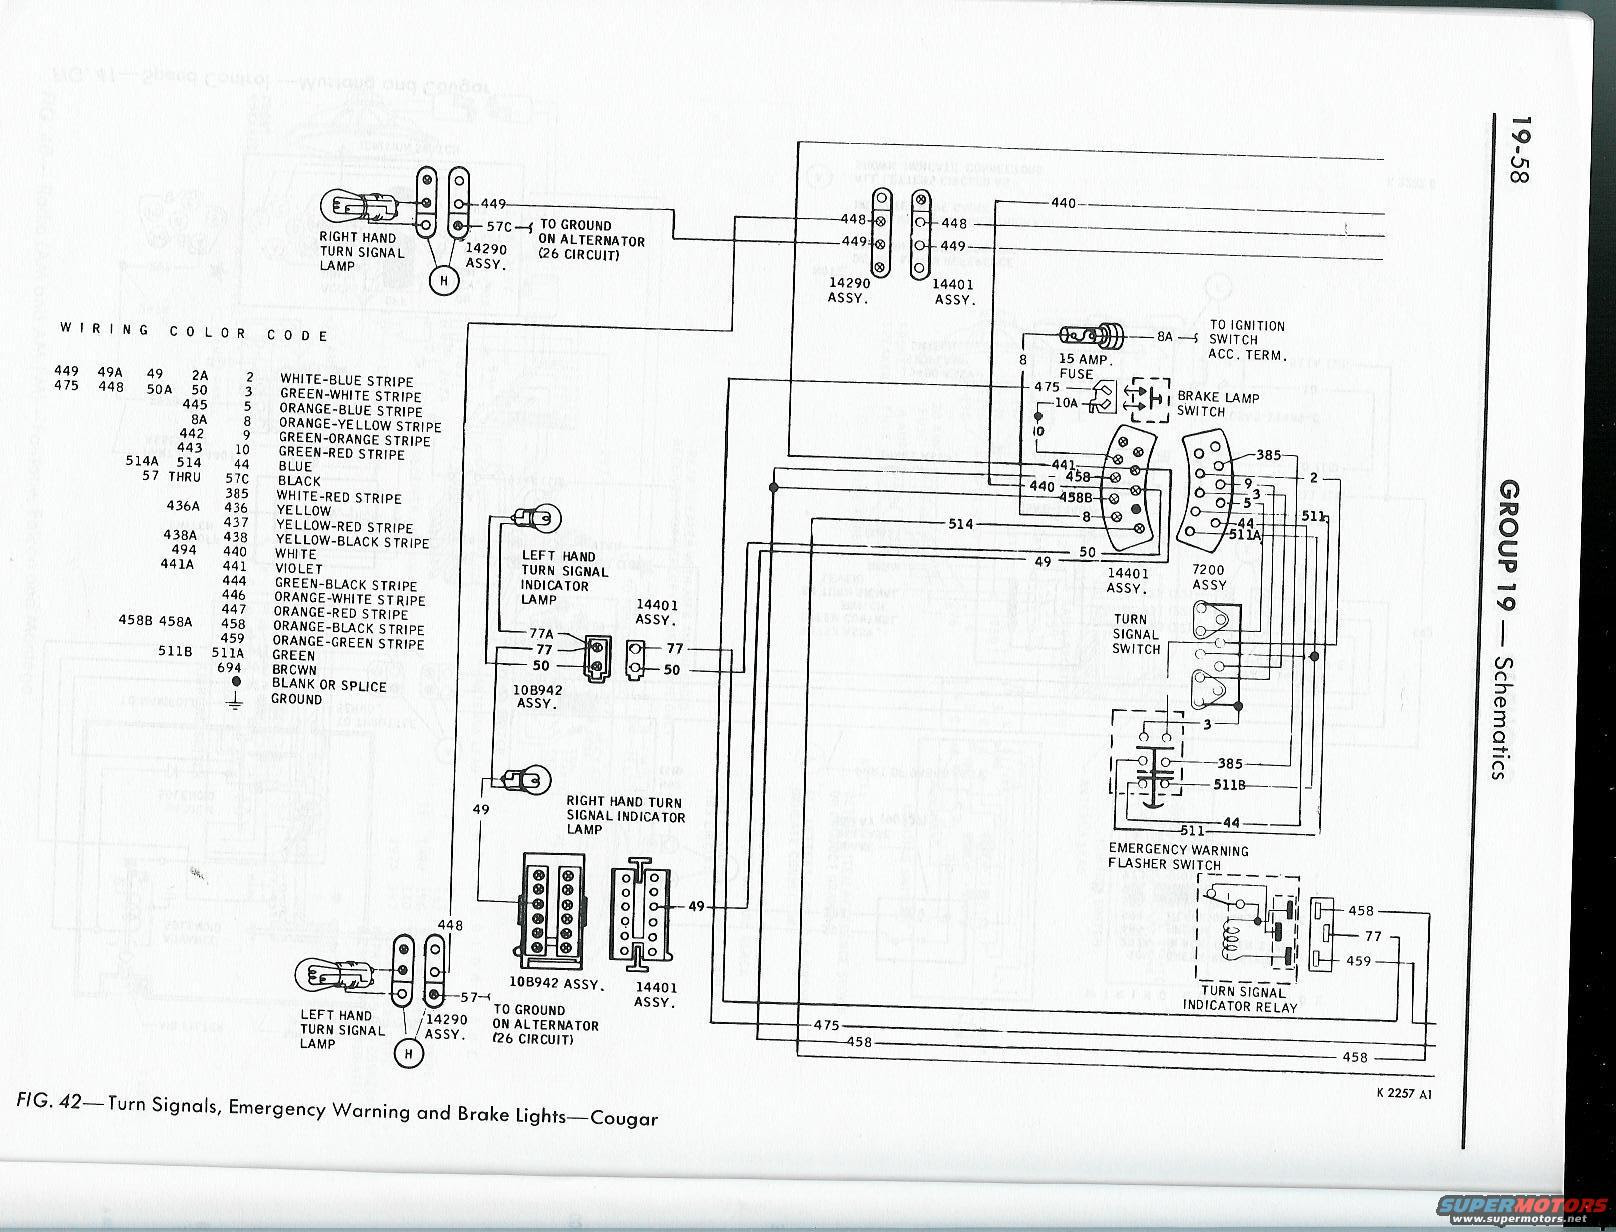 Diagram 1996 Cougar Wiring Diagram Full Version Hd Quality Wiring Diagram Btcdiagrams15 Itcgspoleto It